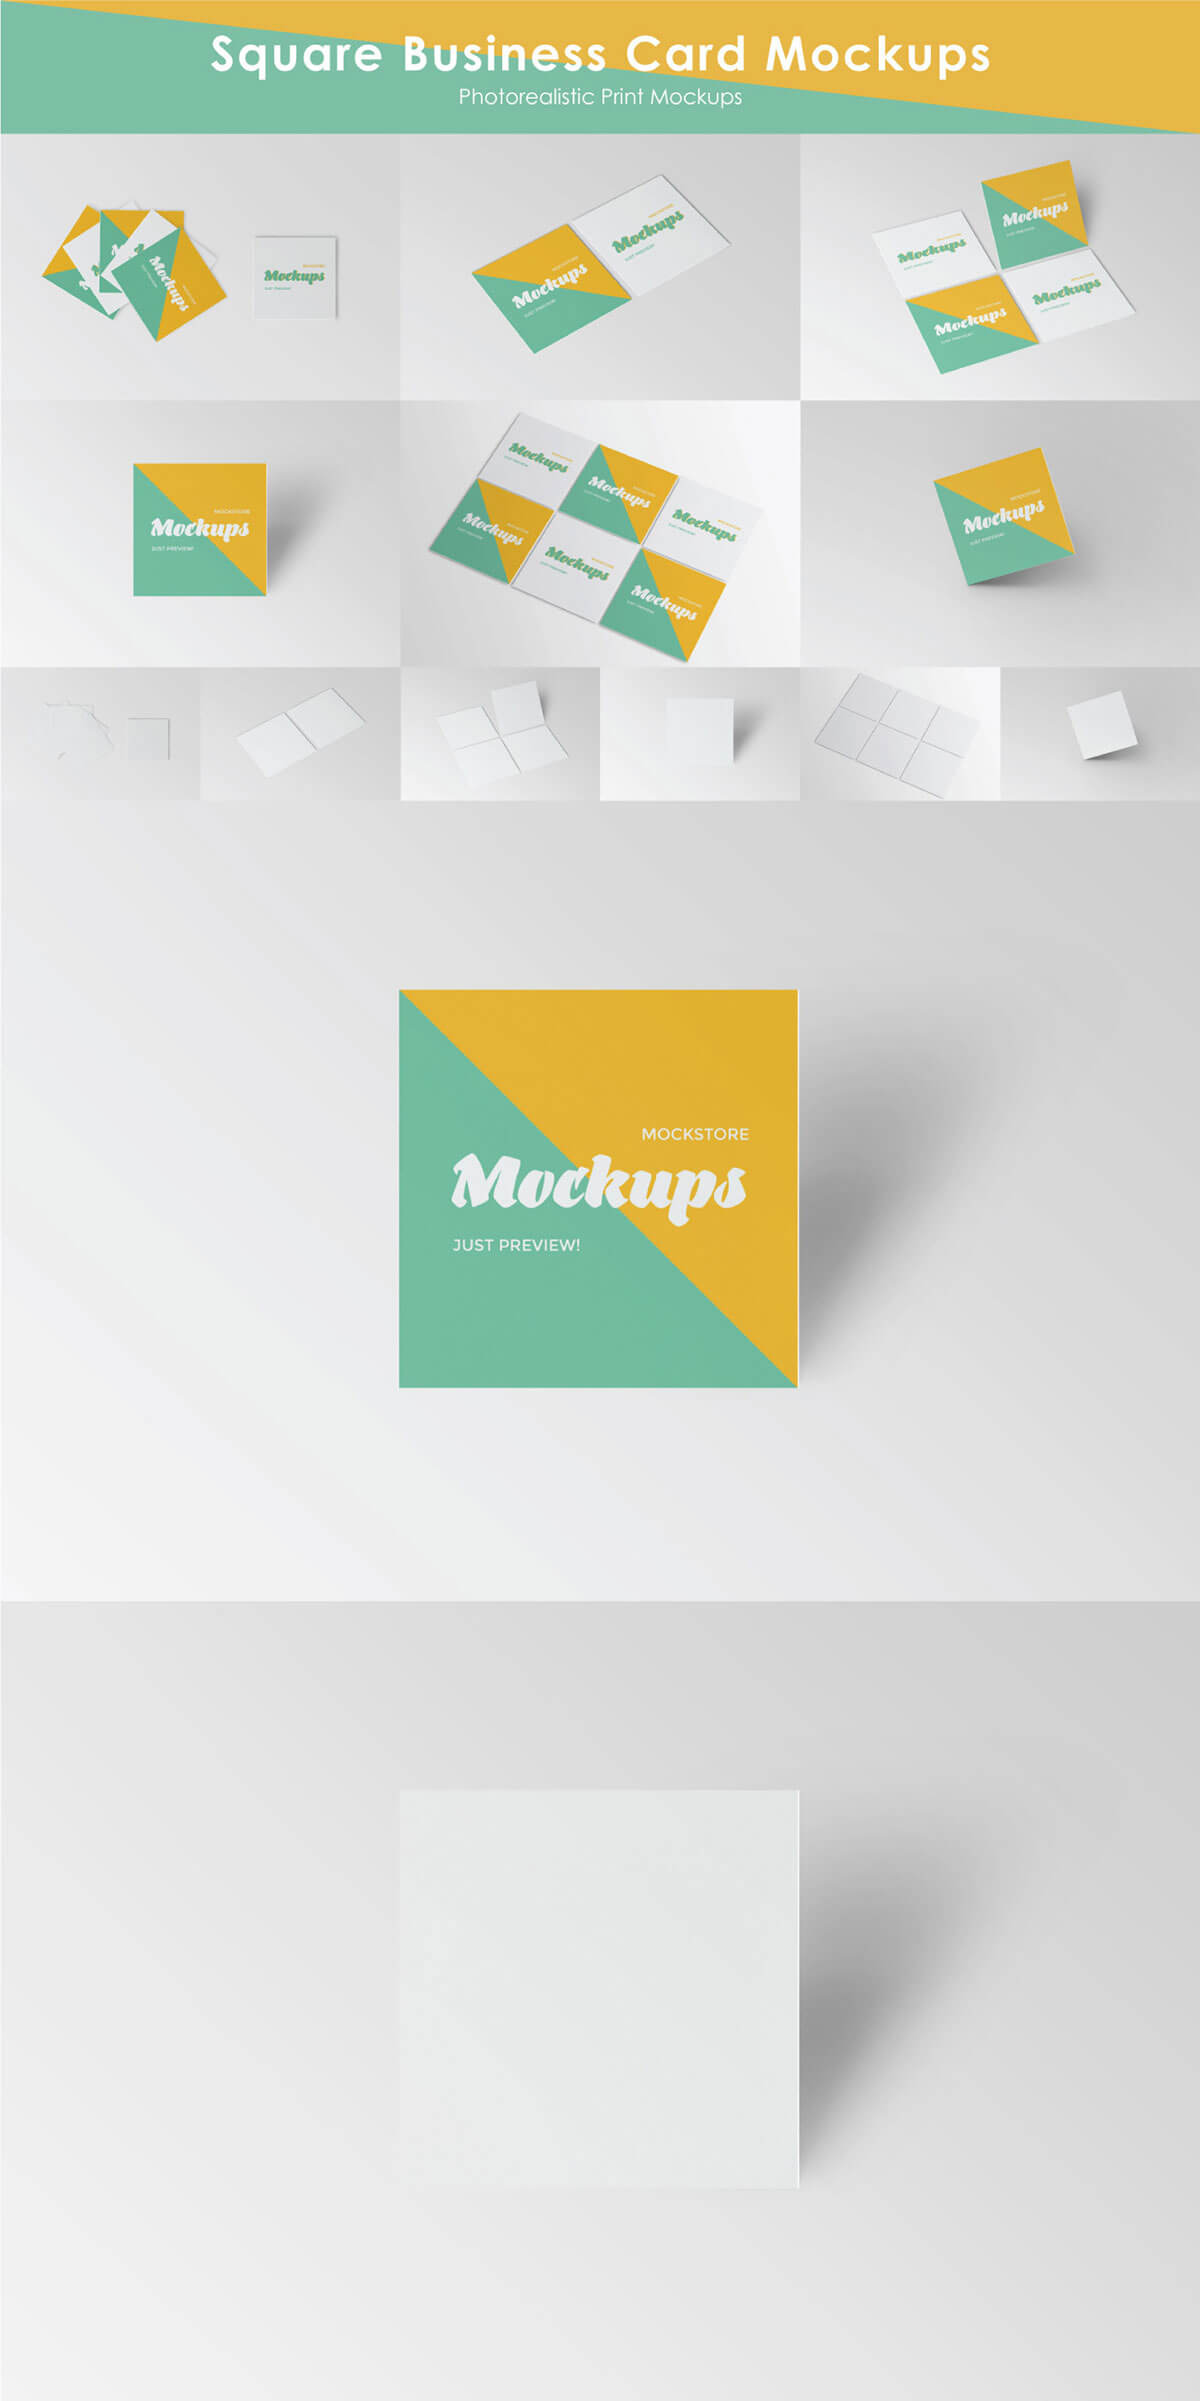 Free Square Business Card Mockups